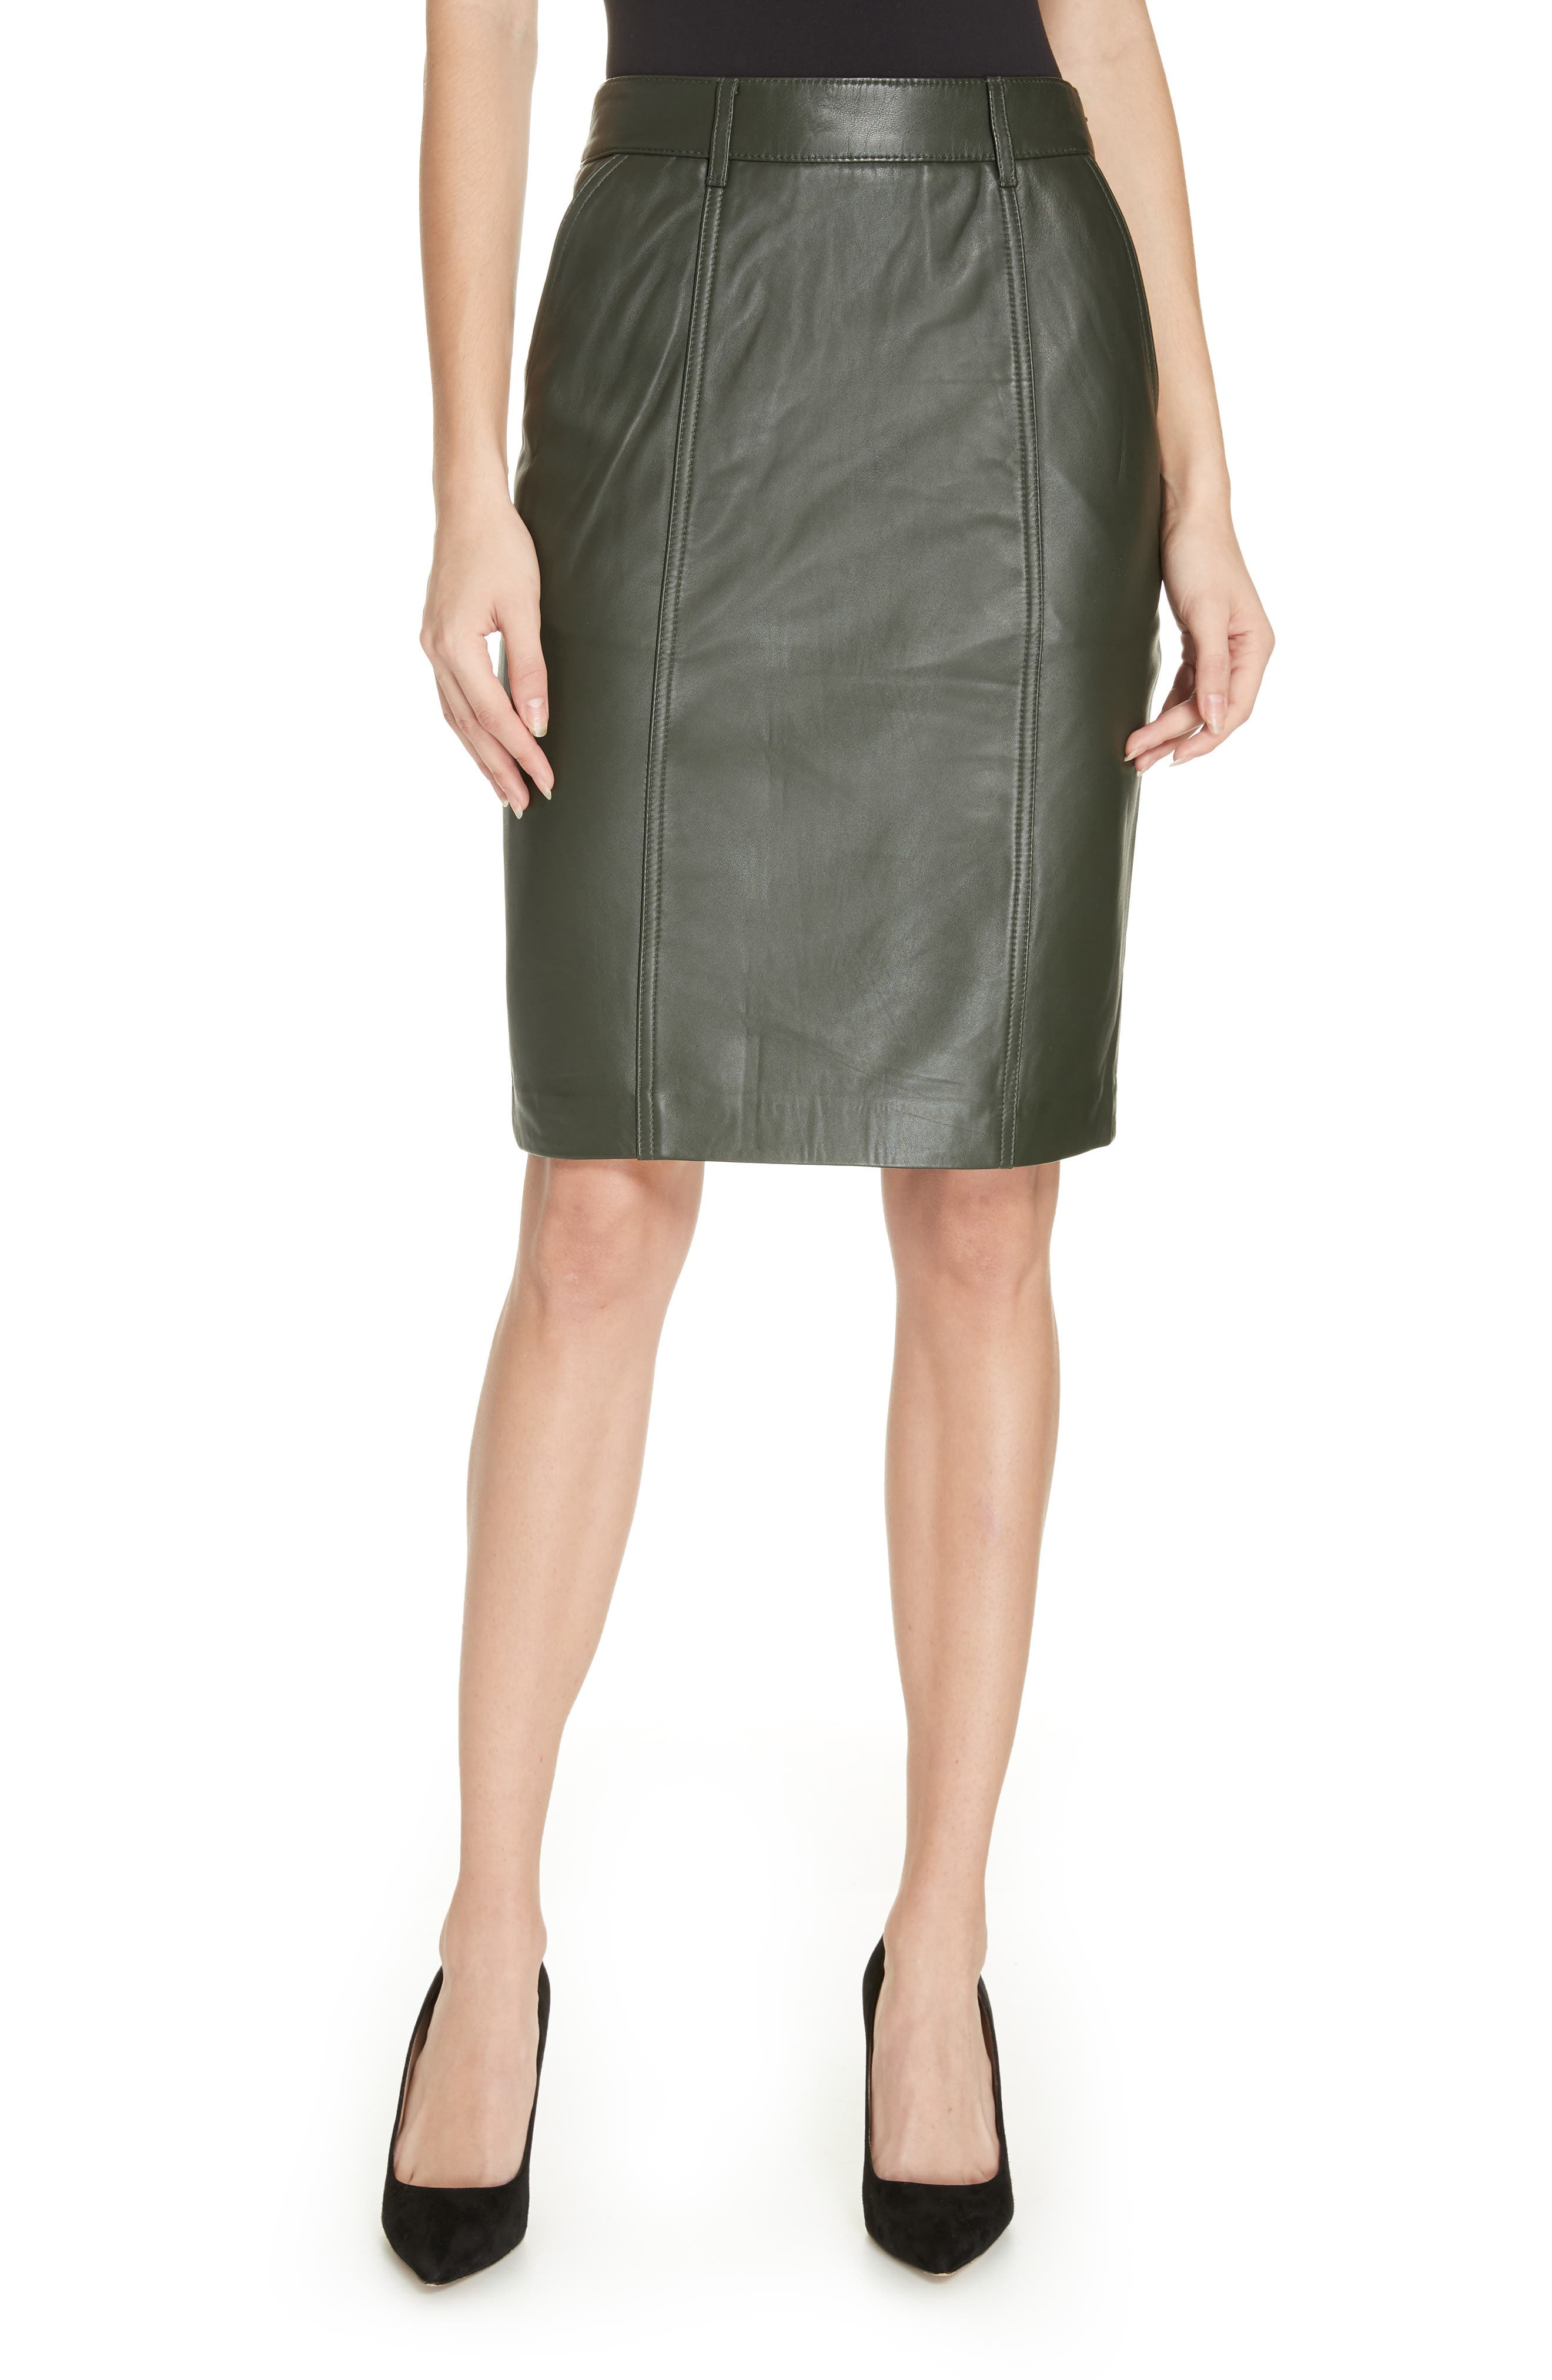 REISS Kara Leather Pencil Skirt in Green